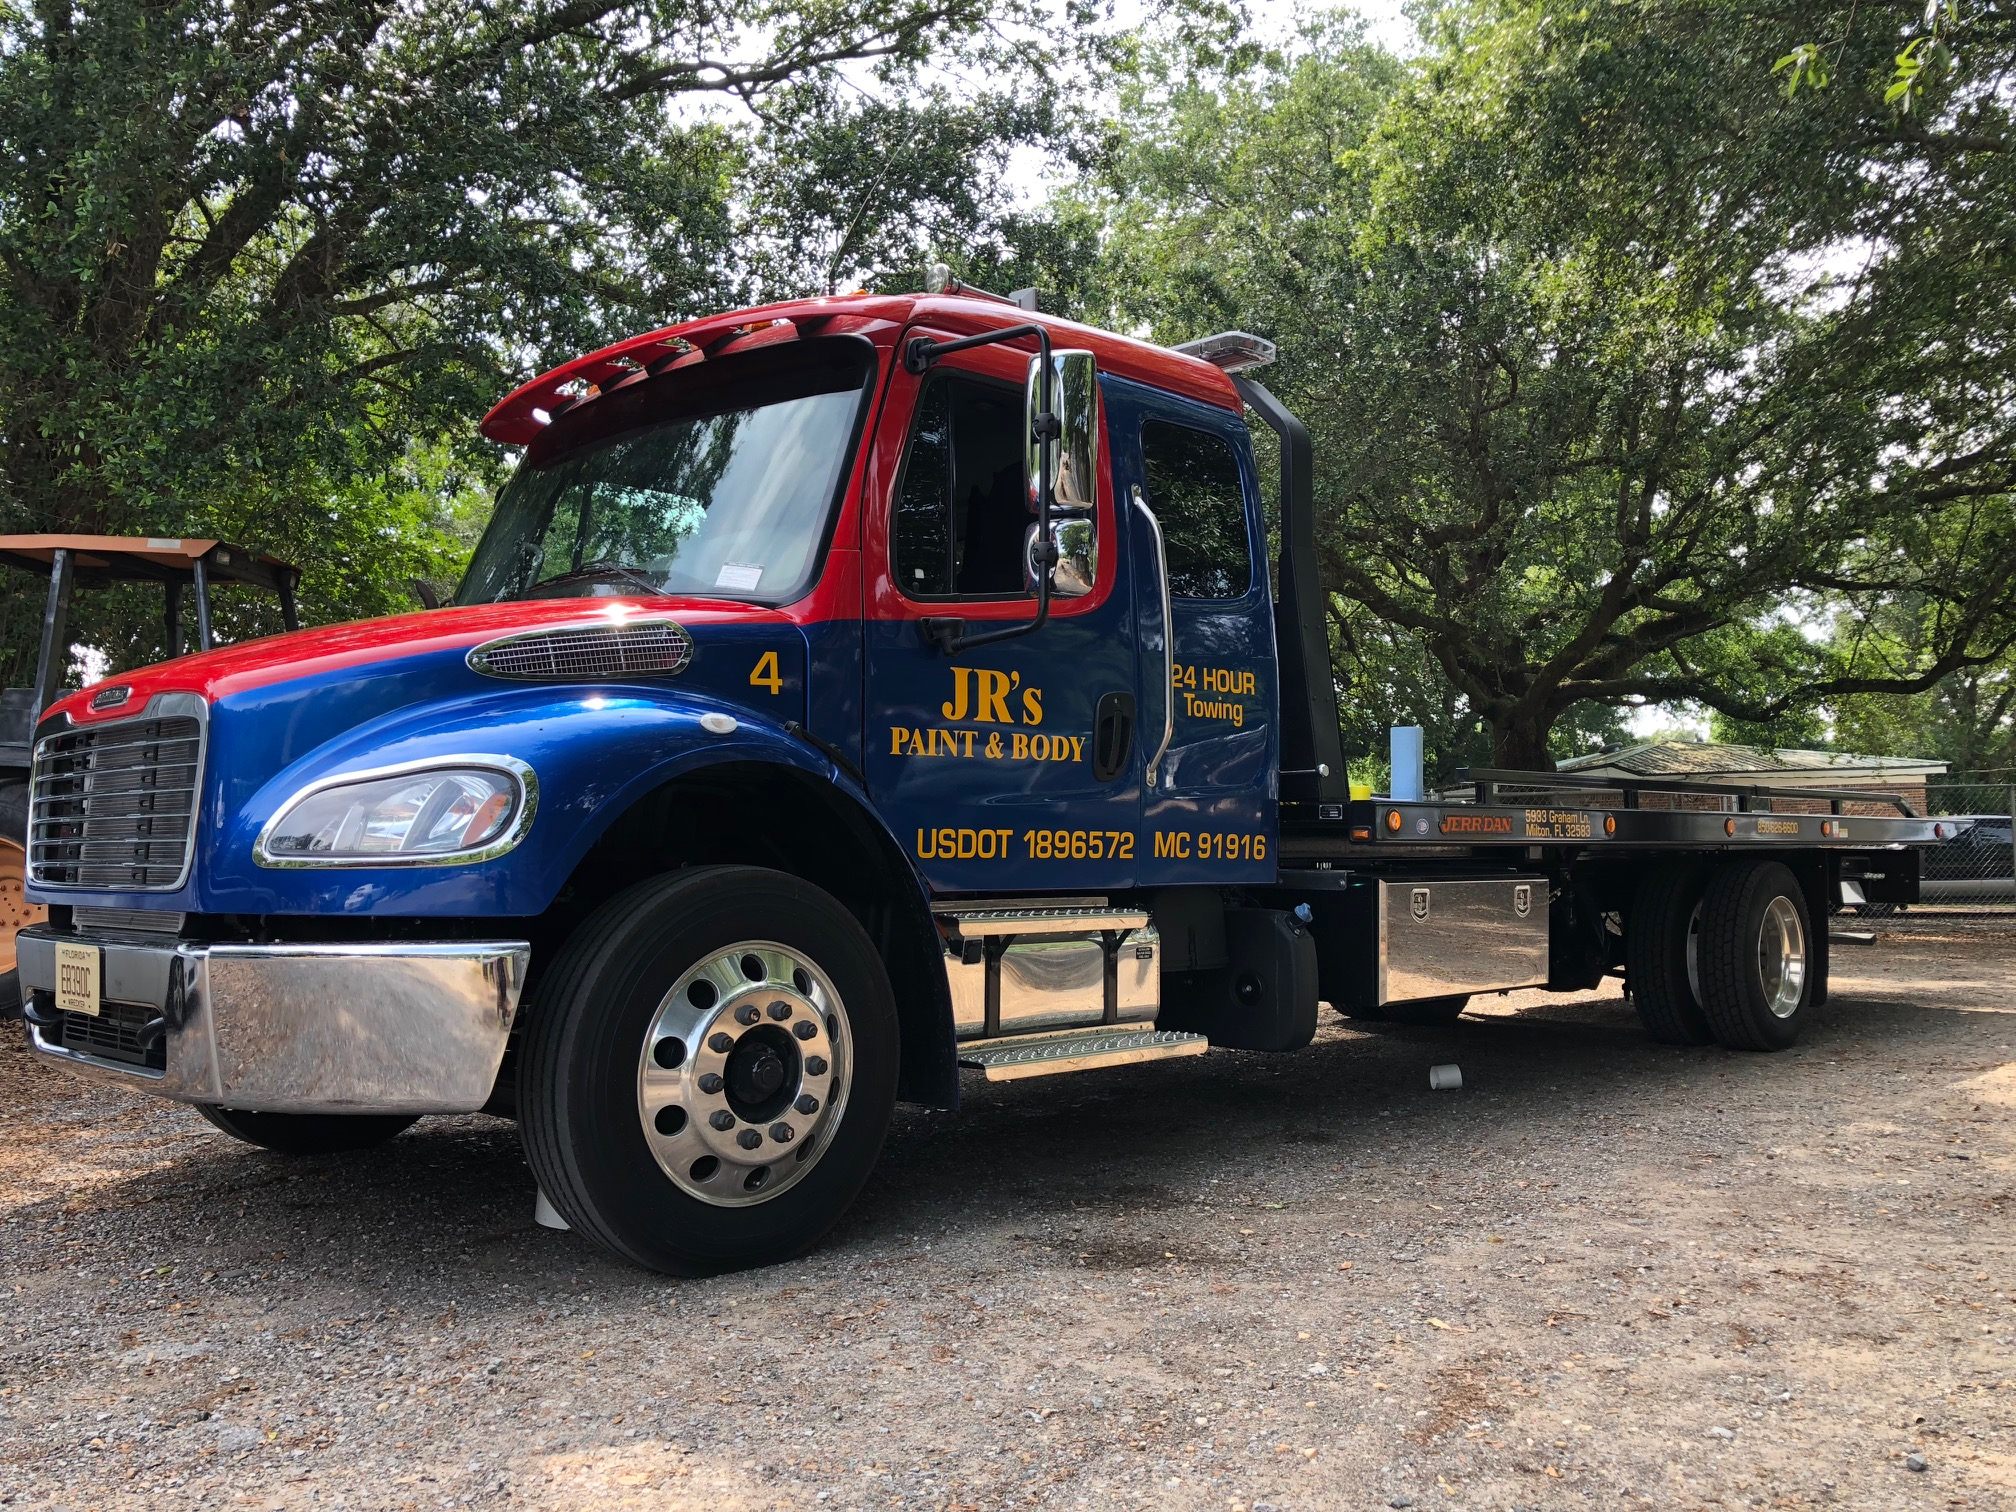 Jr's Paint and Body Towing Towing.com Profile Banner